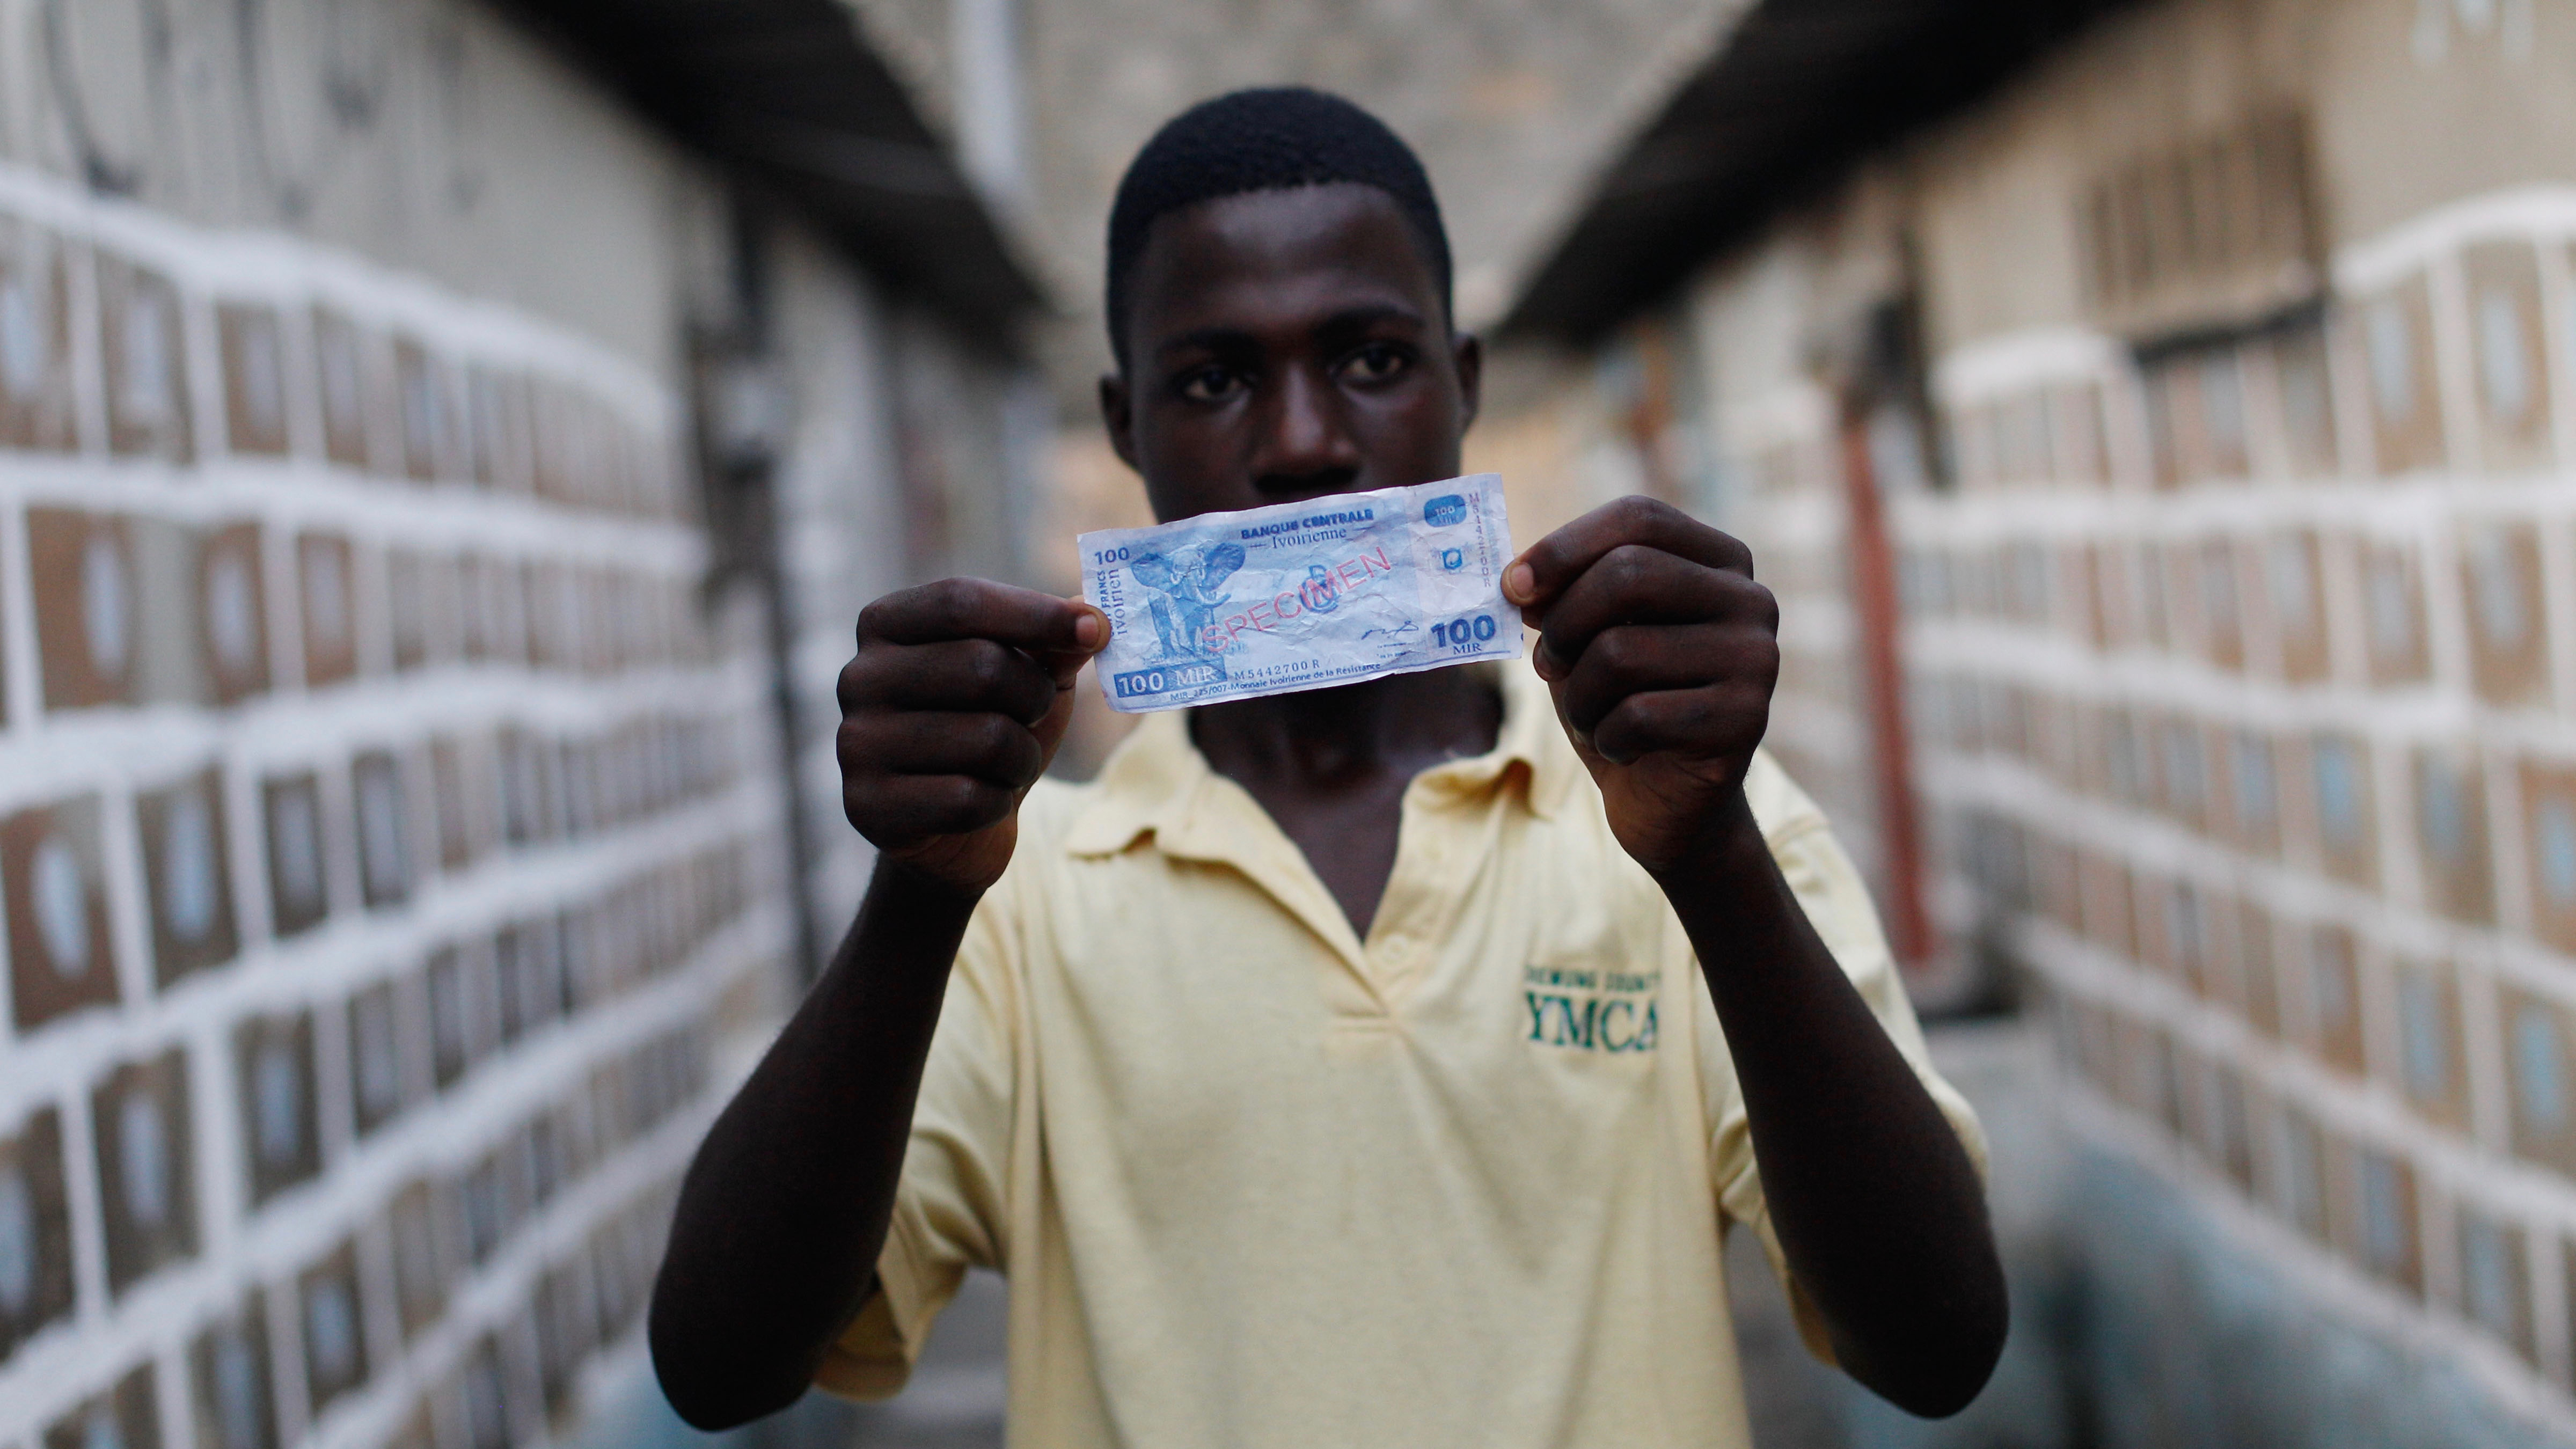 """Charley Gon, a young supporter of Laurent Gbagbo, displays a specimen 100 franc note in a fictional Ivorian currency, in the Yopougon district of Abidjan, Ivory Coast, Saturday, Jan. 8, 2011. Specimens of the """"Ivorian Currency of the Resistance"""" (MIR by its french acronym) are circulating among Gbagbo loyalists after state owned media have discussed the possibility of Ivory Coast quitting the West African franc CFA zone and establishing its own currency. The regional central bank has recognized Alassane Ouattara as the head of state and revoked Gbagbo's access to state accounts. (AP Photo/Rebecca Blackwell)"""